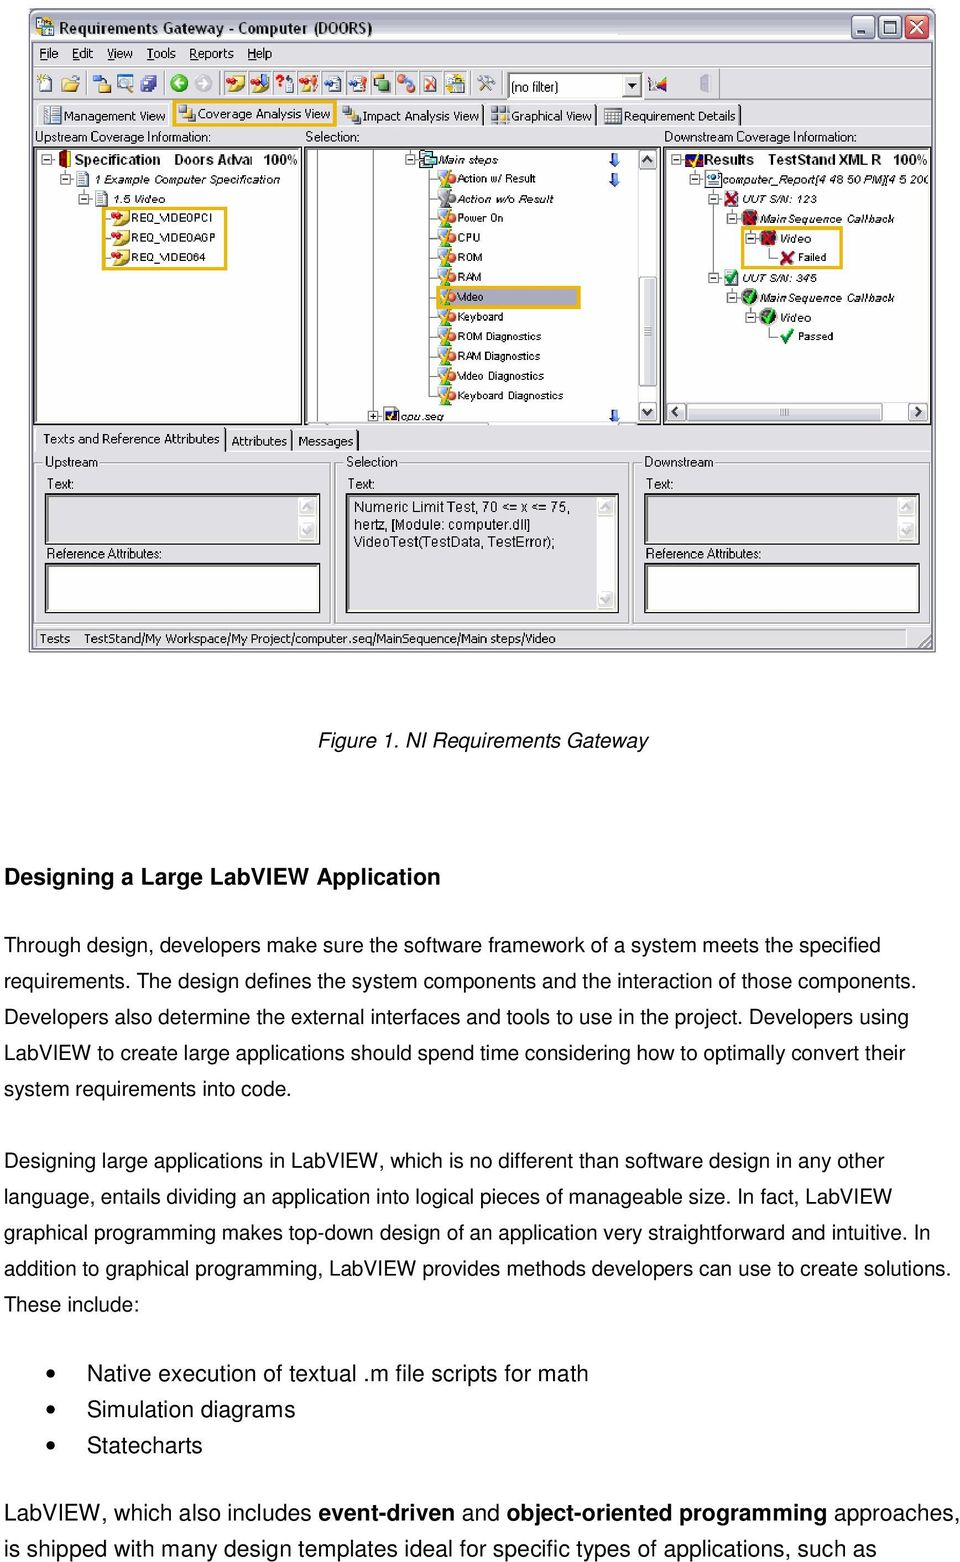 Developers using LabVIEW to create large applications should spend time considering how to optimally convert their system requirements into code.